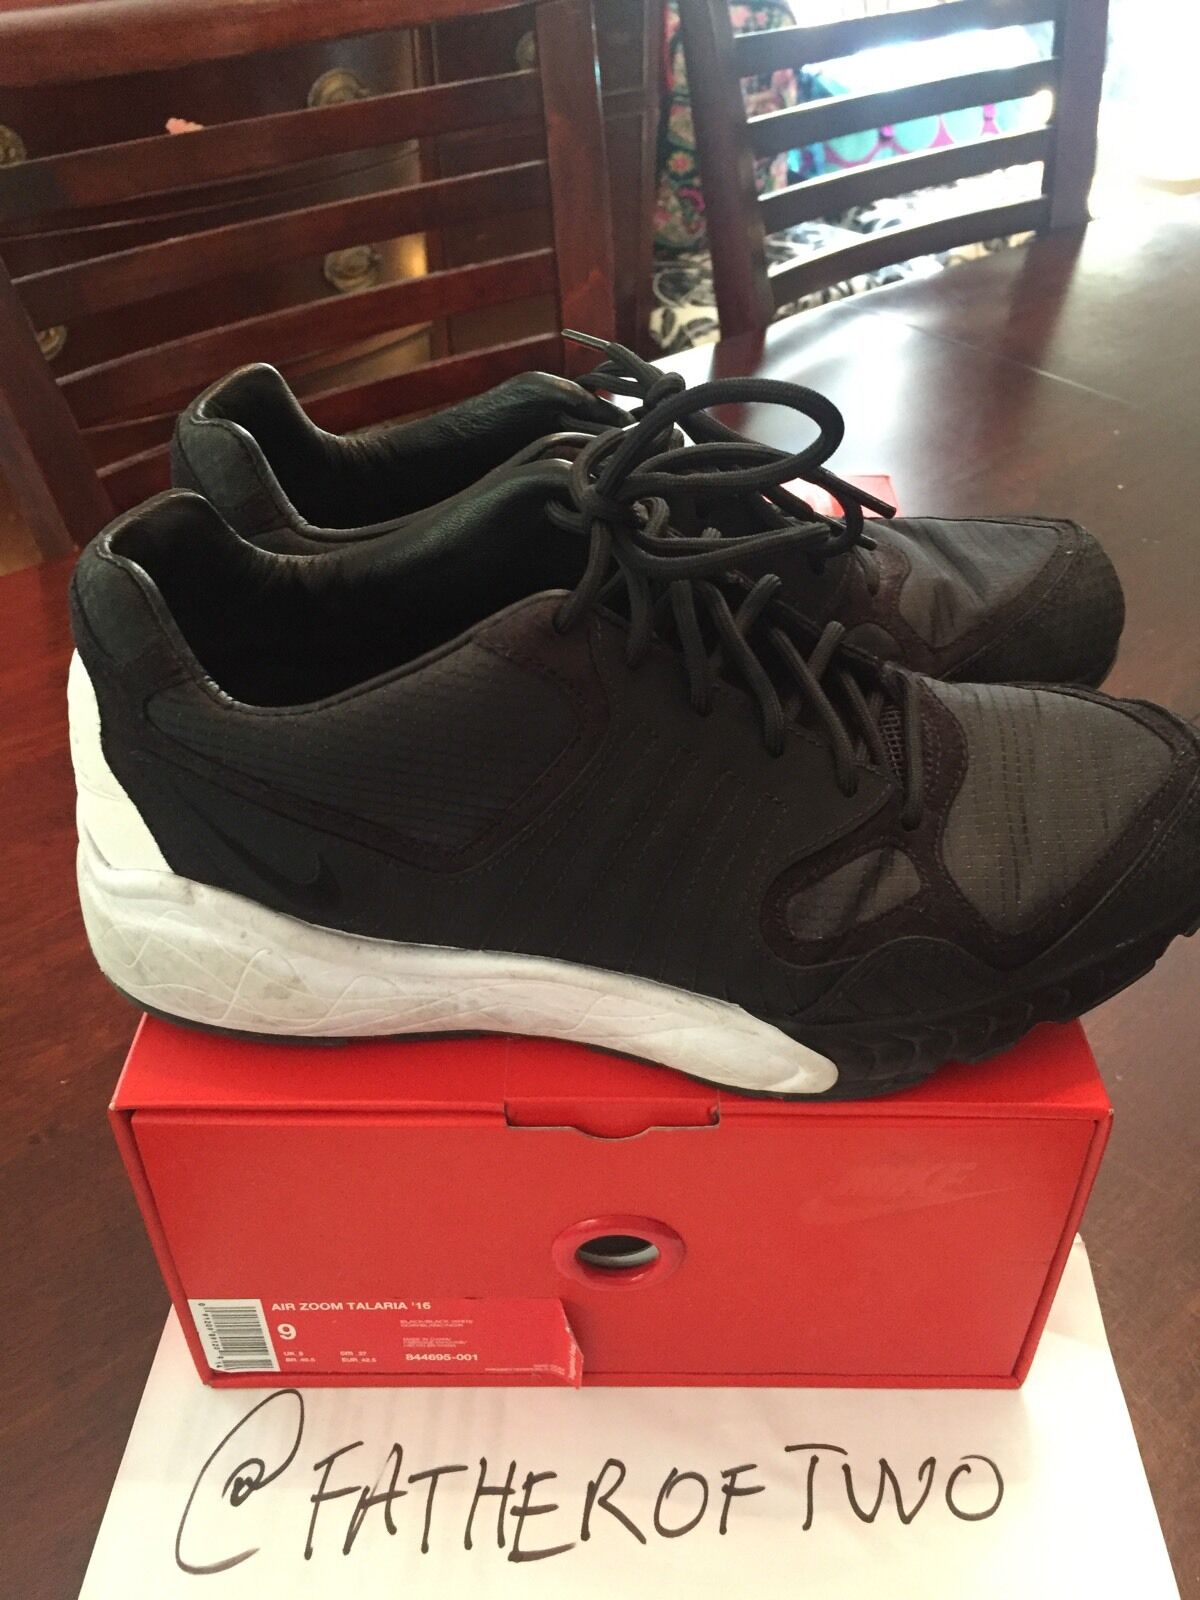 Used Authentic Authentic Authentic Nike Zoom Talaria '16 US Size 9 UK Sz 8 Black 2e34a2